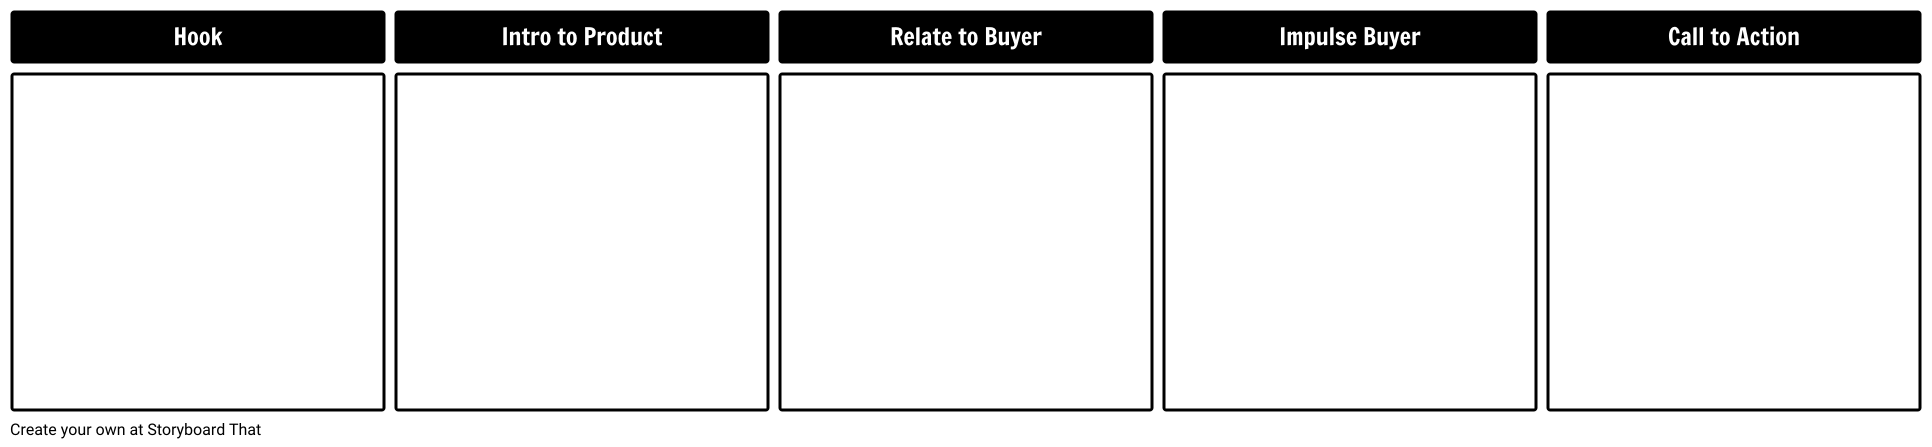 Sales Pitch Template Storyboard By Business Template Maker